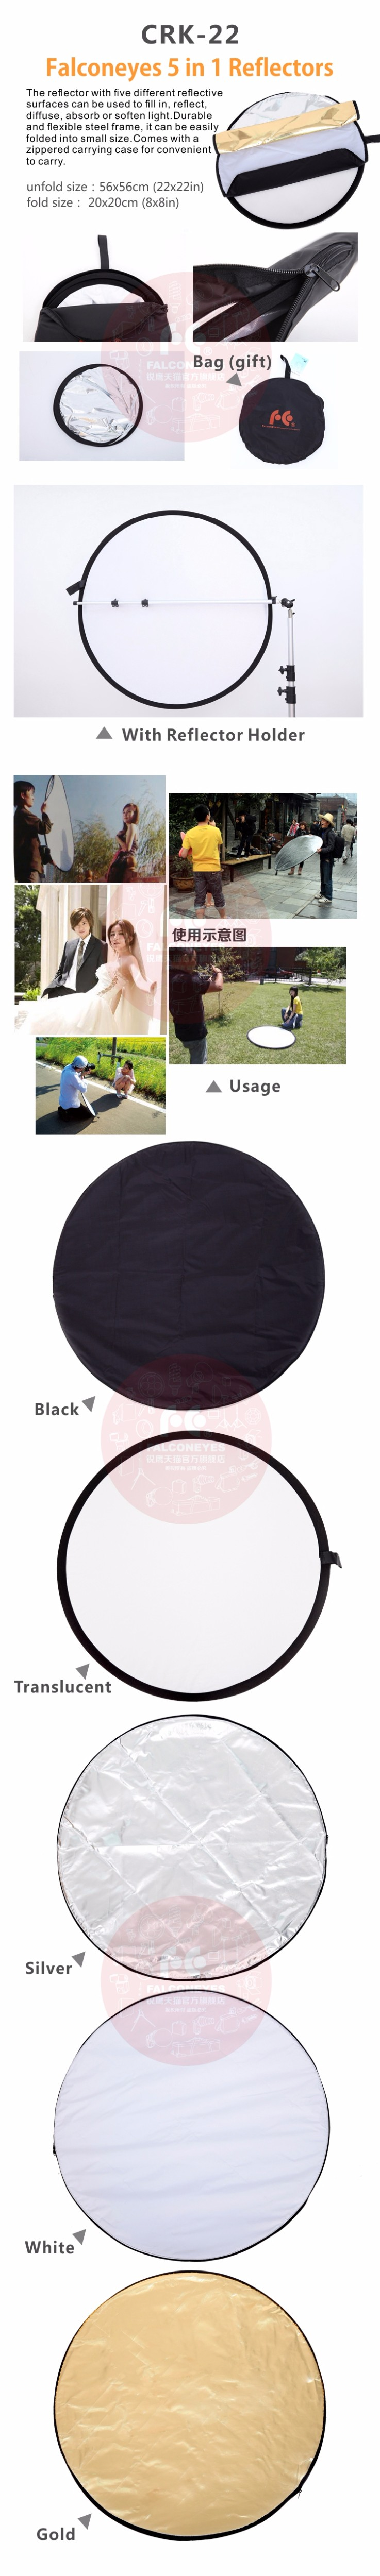 "Falconeye 56CM/22"" 5 in 1 Round Reflector for Camera Photo Studio Retrato Collapsible Photography Accessories / Flash Reflector 19"